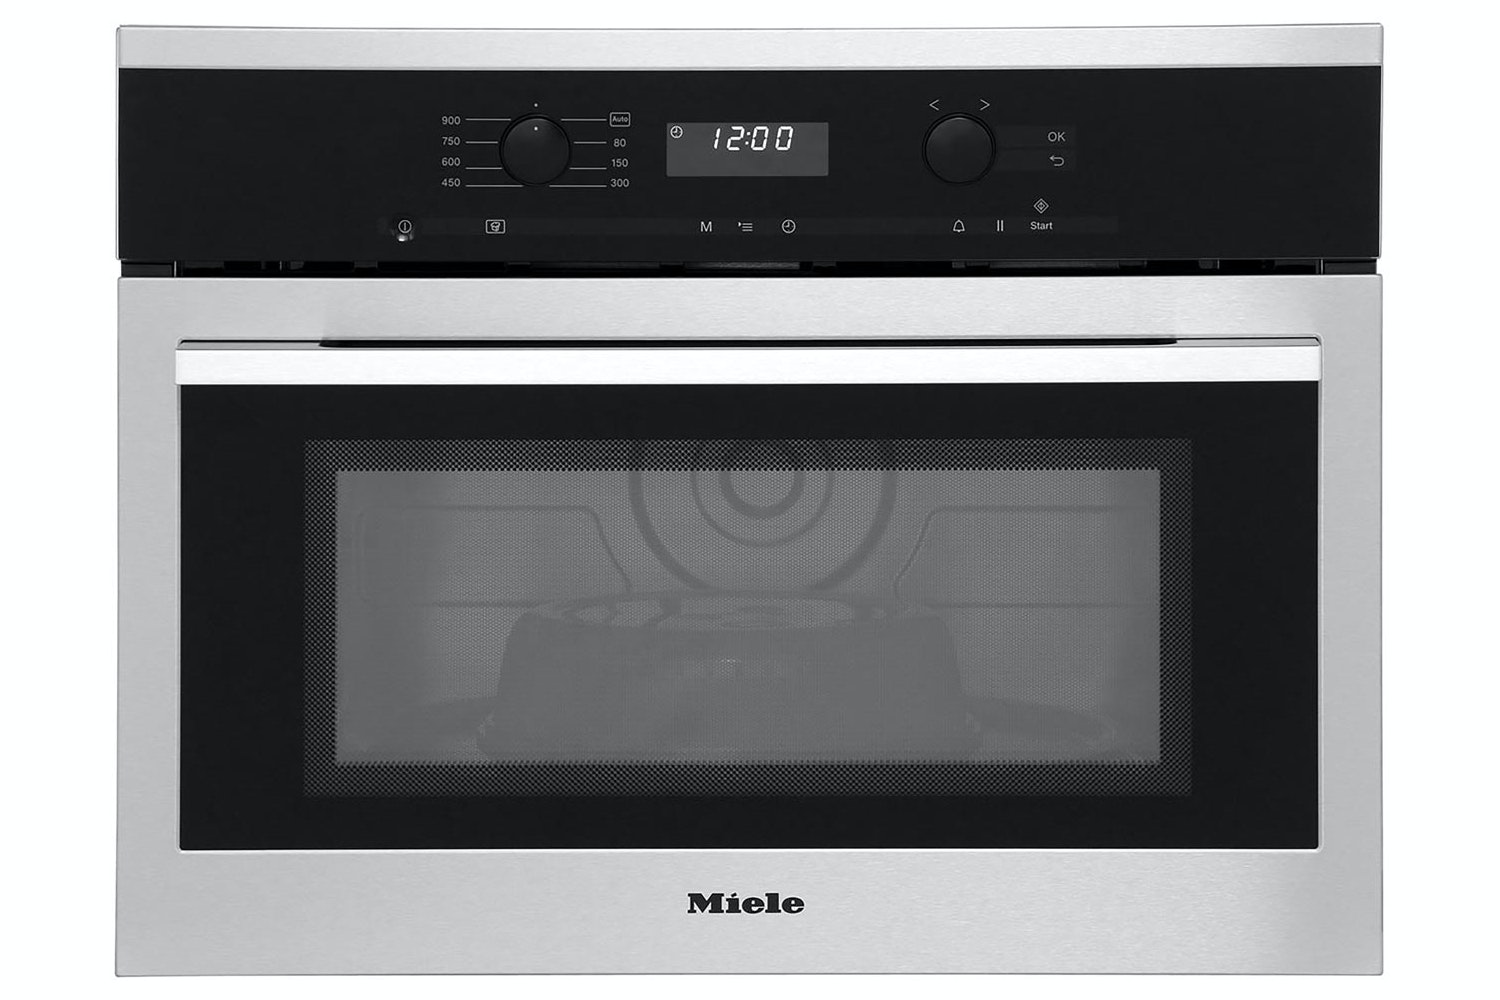 Miele M 6160 TC  Built-in microwave oven   with top controls for maximum combination options